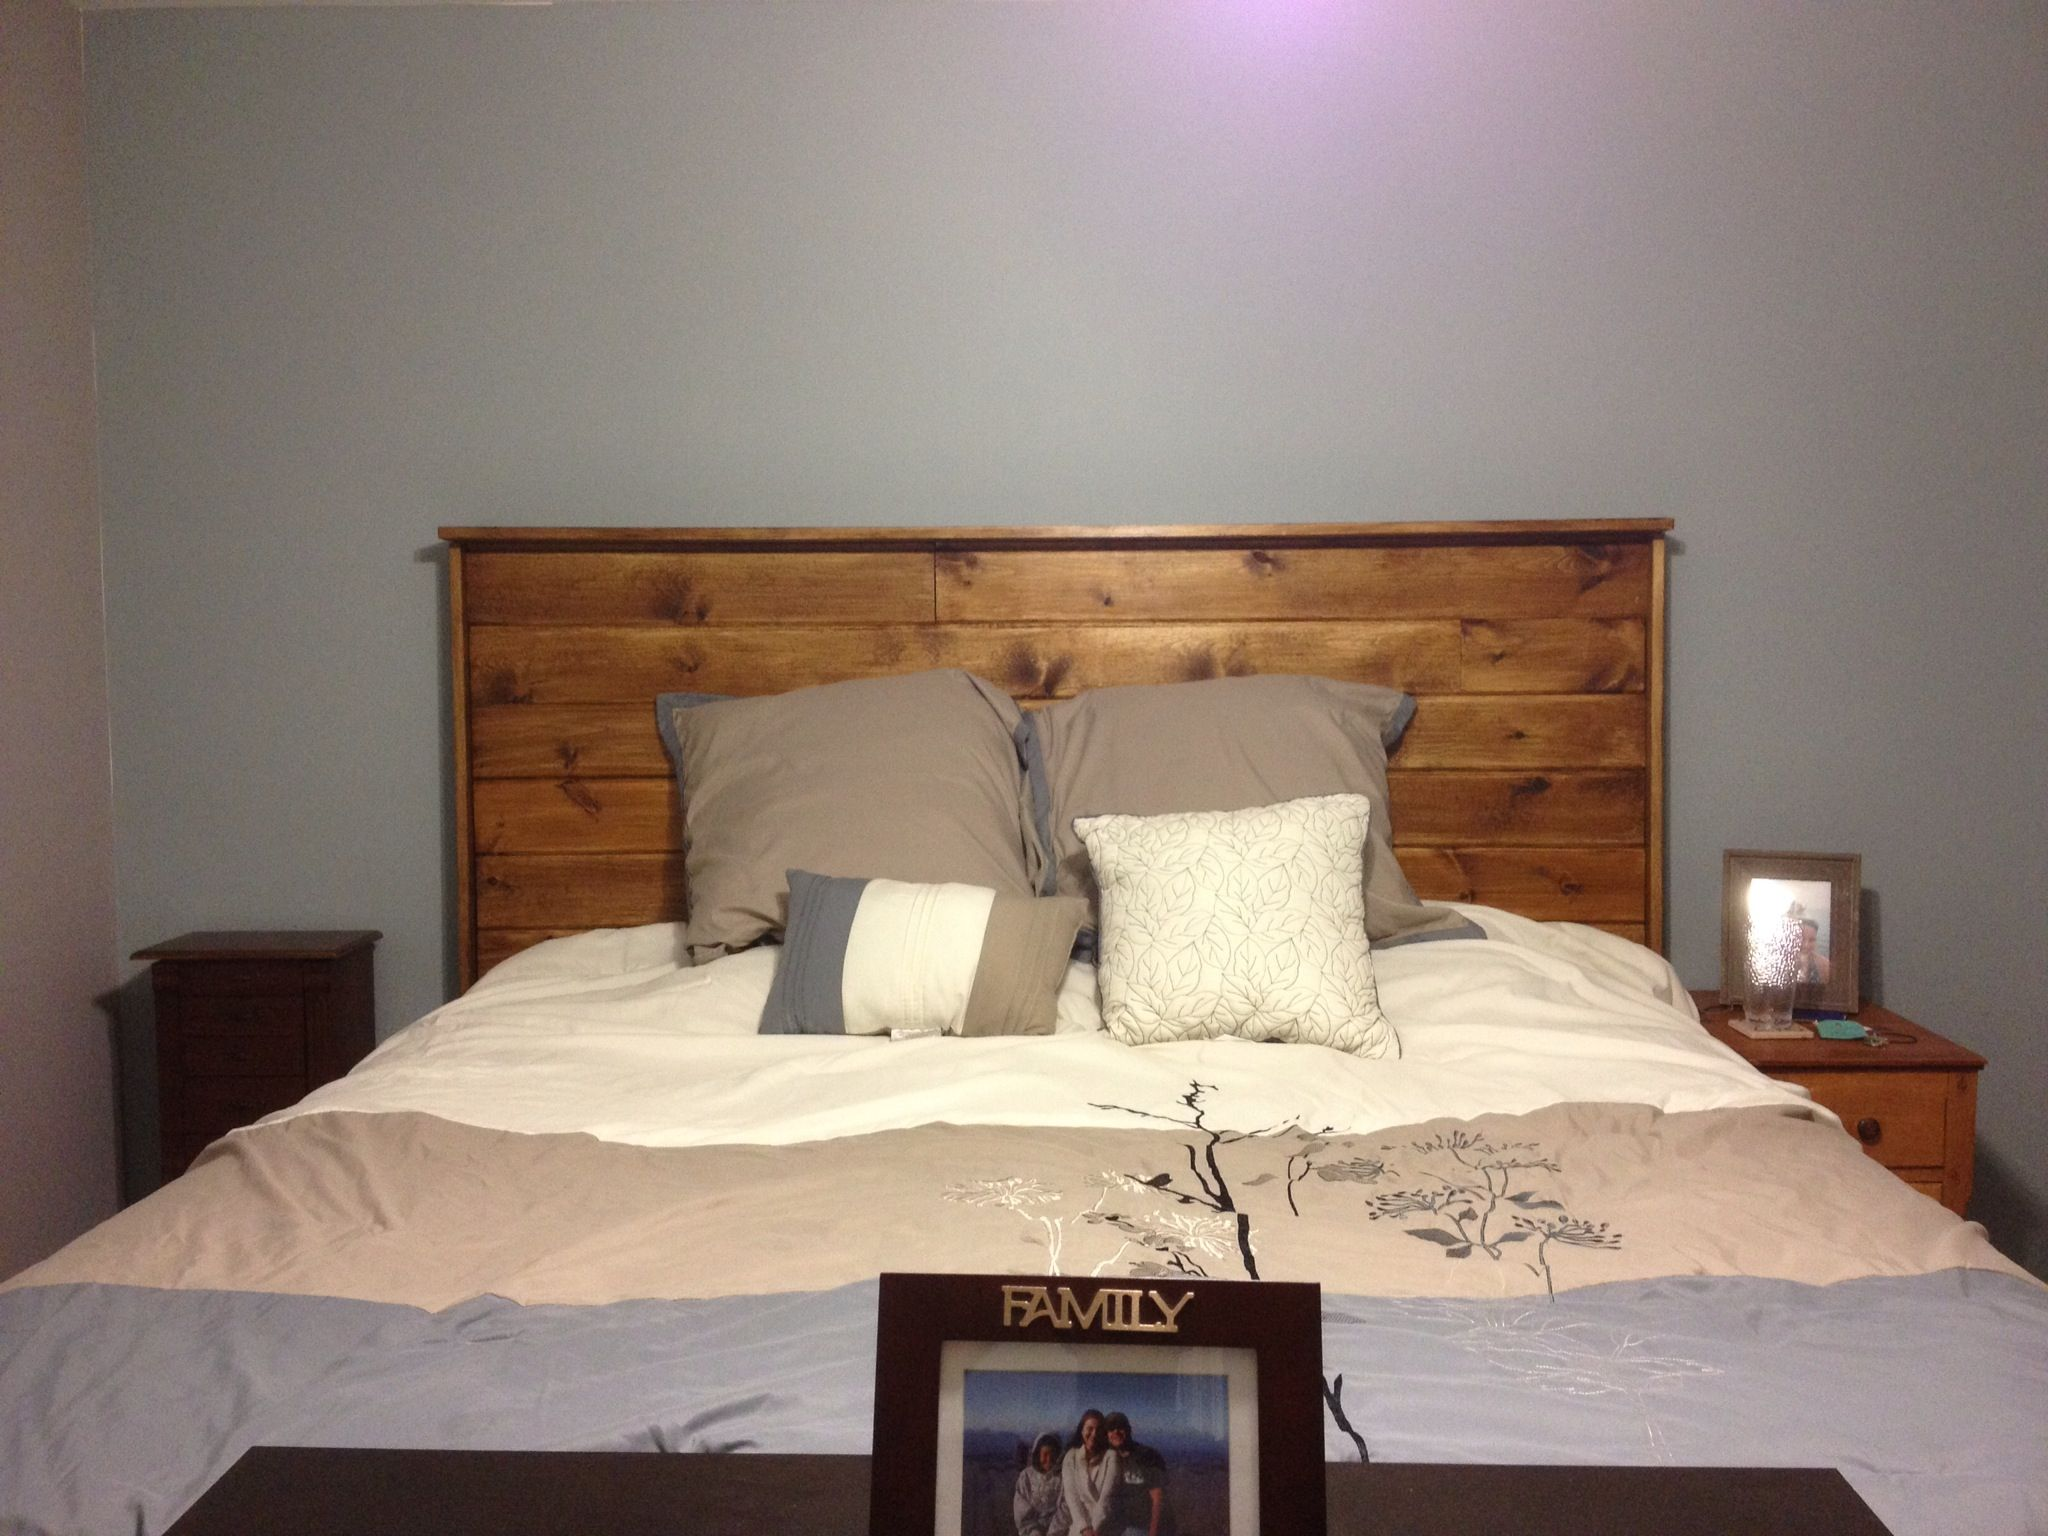 Homemade headboard for king size bed home decor Decorative headboards for beds